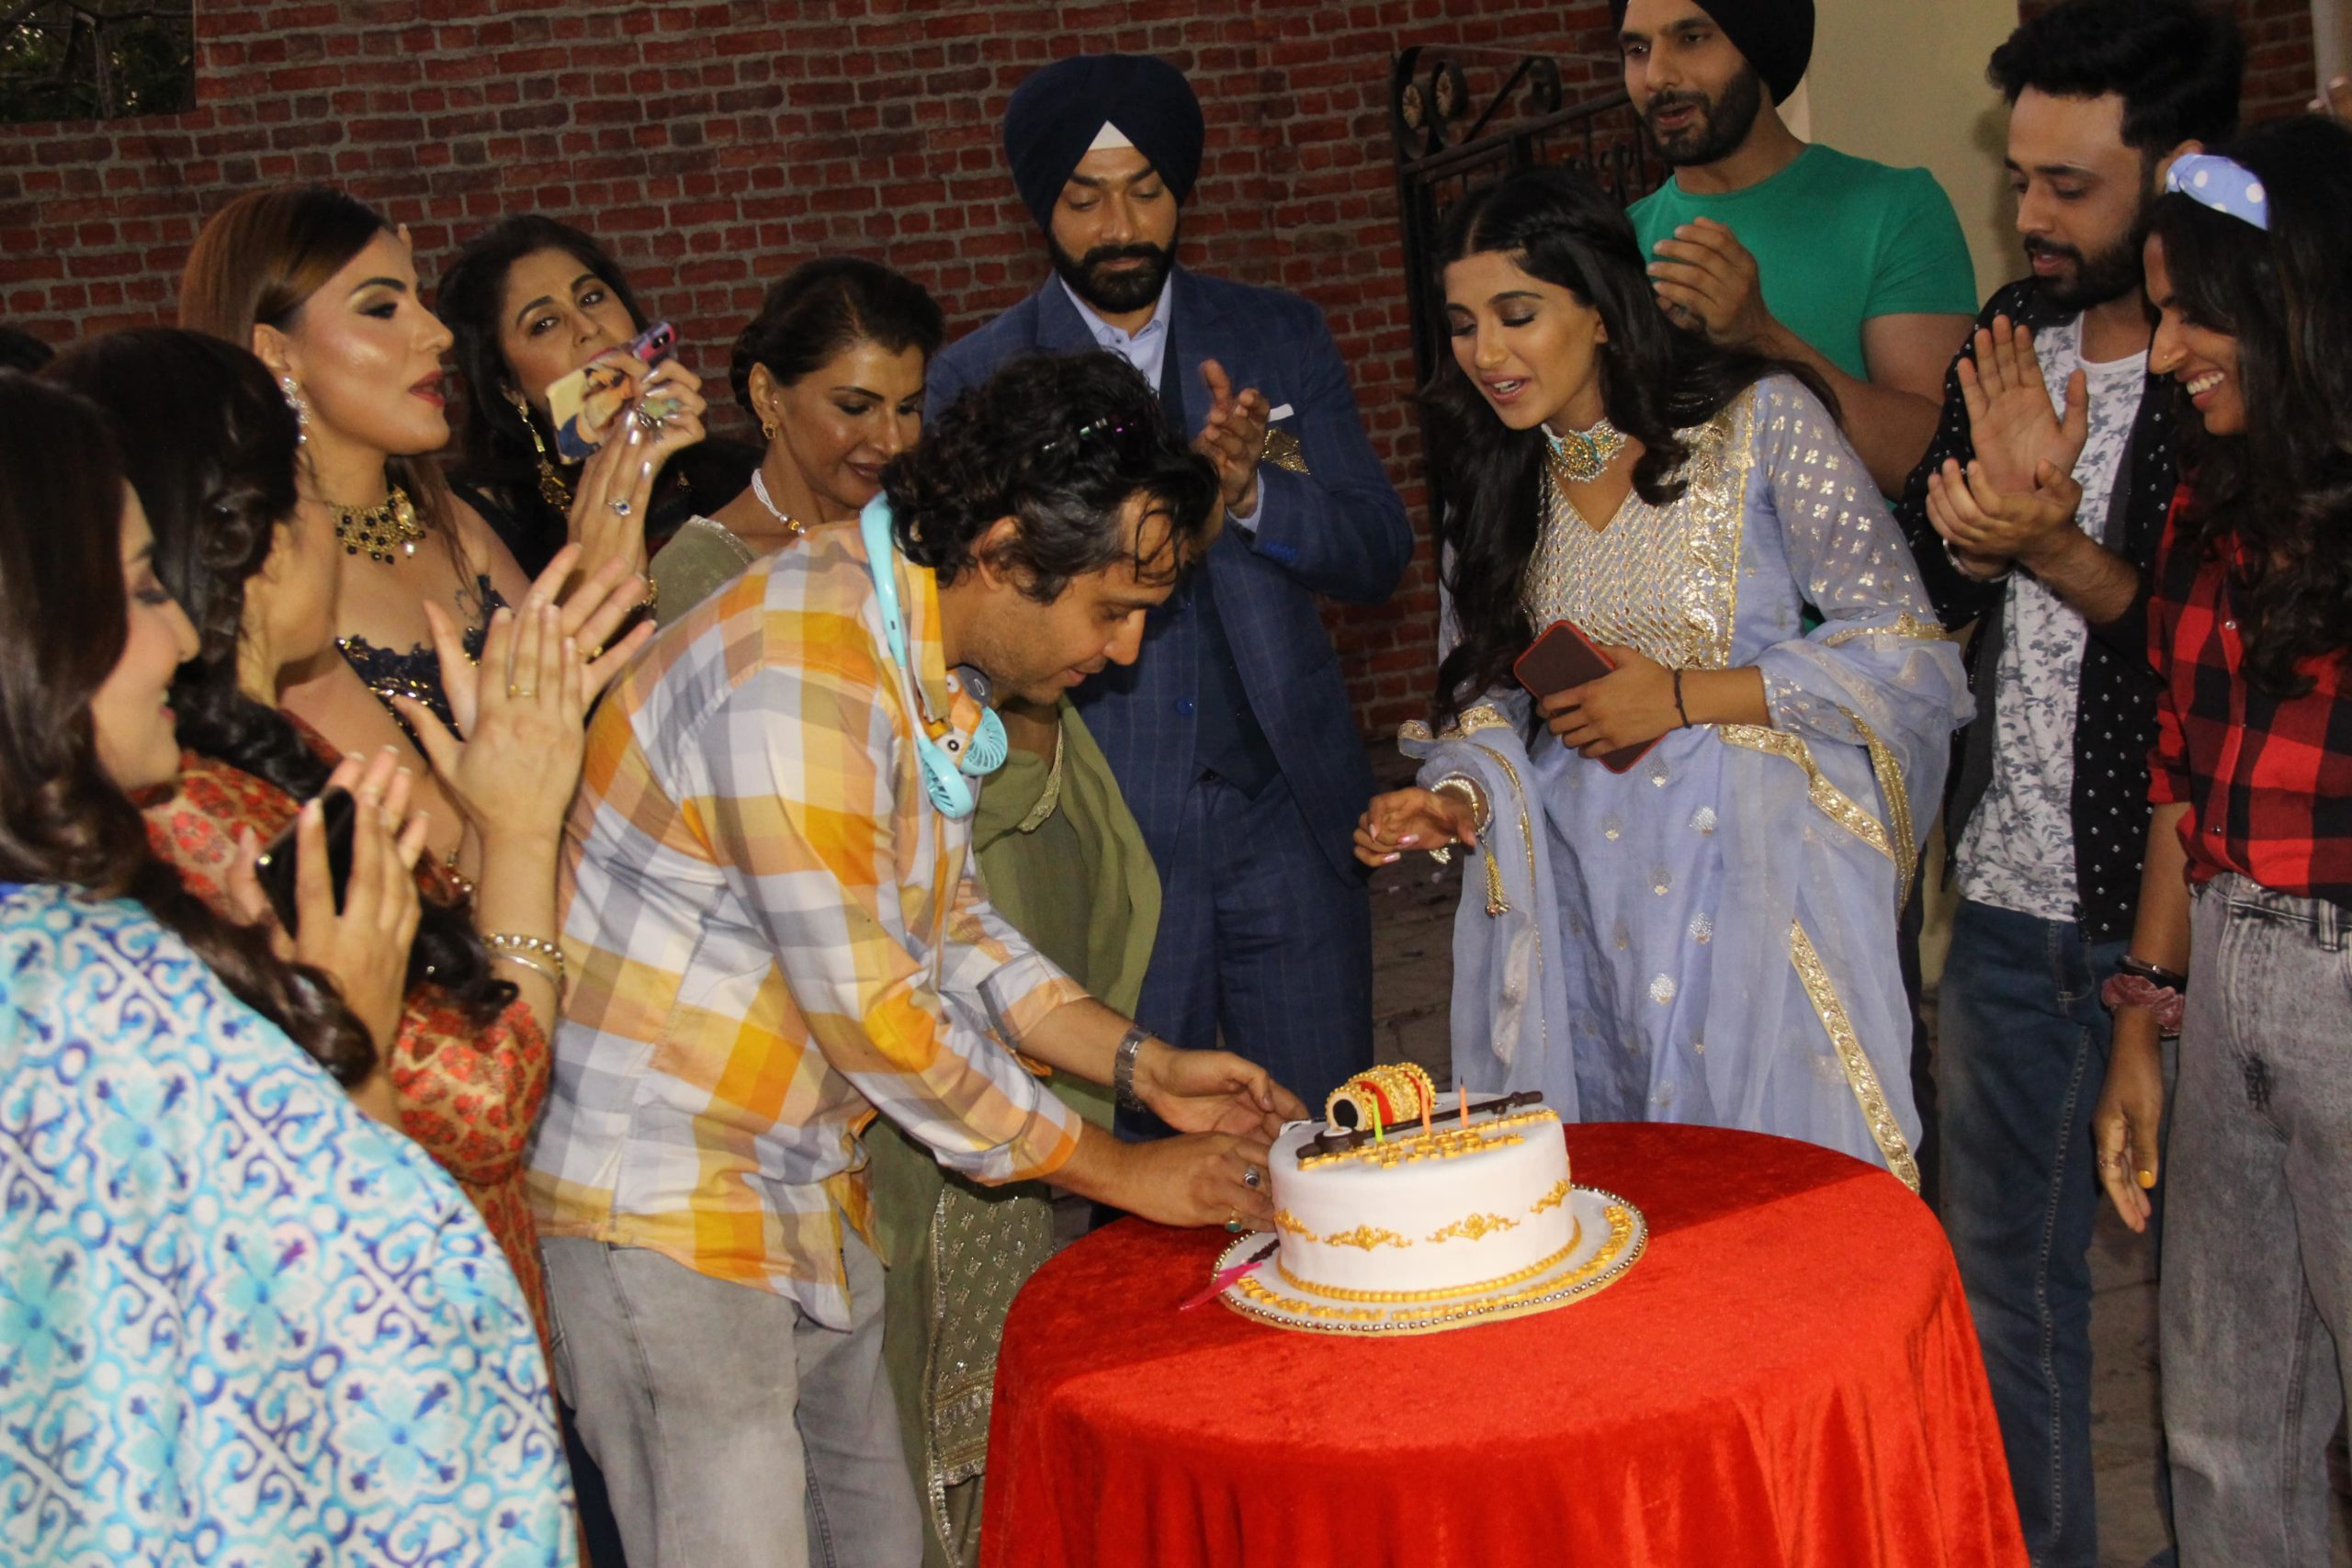 Happy 200 episodes to team Choti Sarrdaarni!